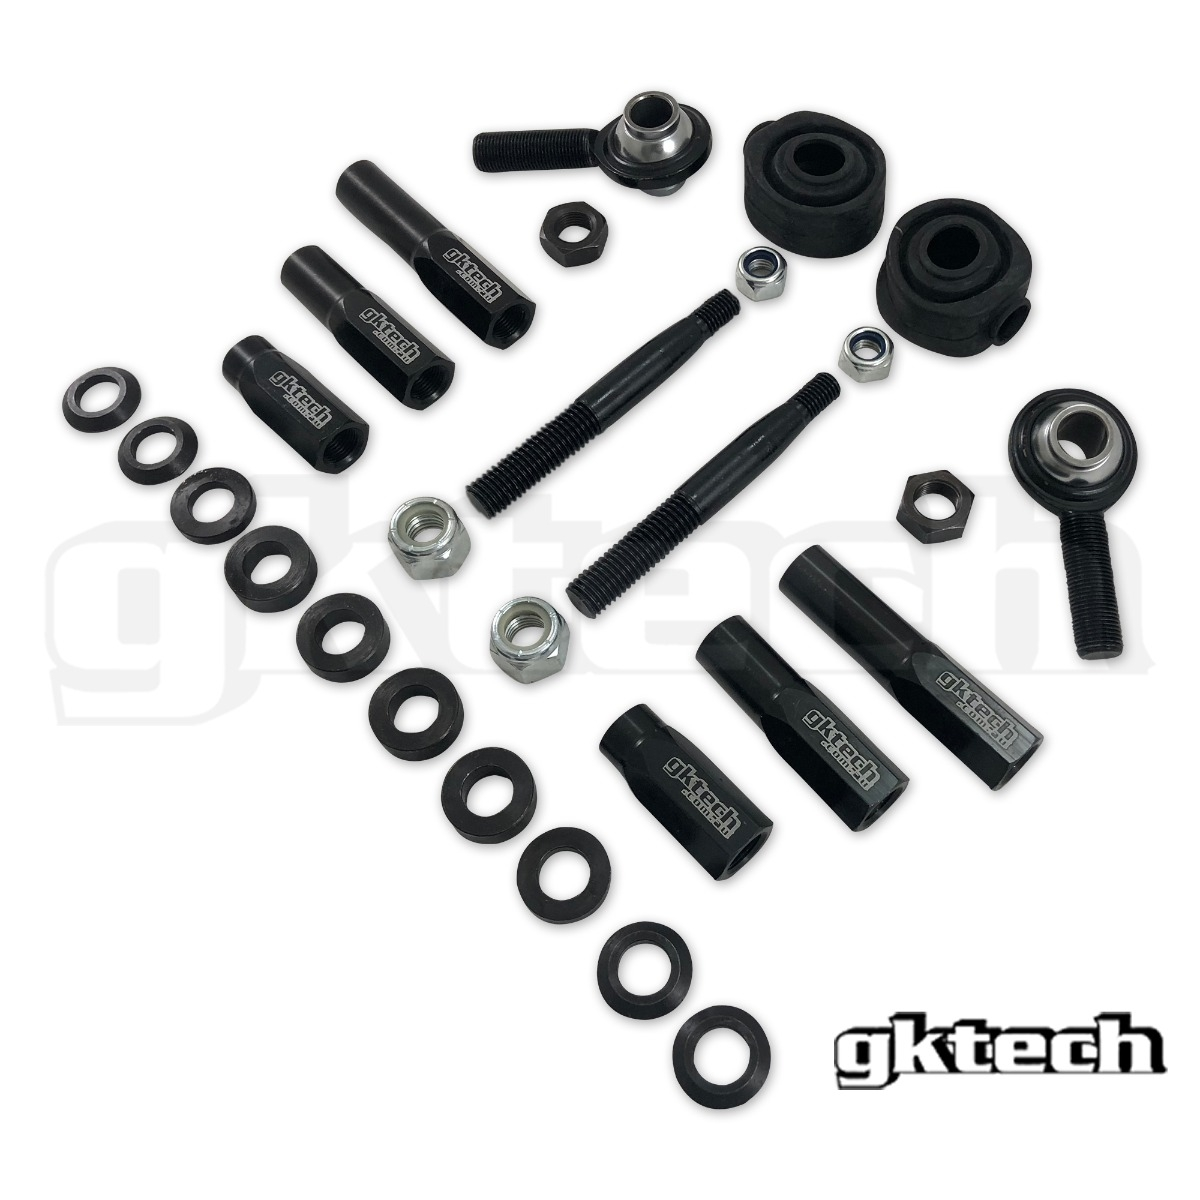 GKTech High Misalignment (64 Degrees) Outer Tie Rod Ends (12mm/14mm) - Nissan Skyline R32 R33 R34, 240SX S13 S14 S15